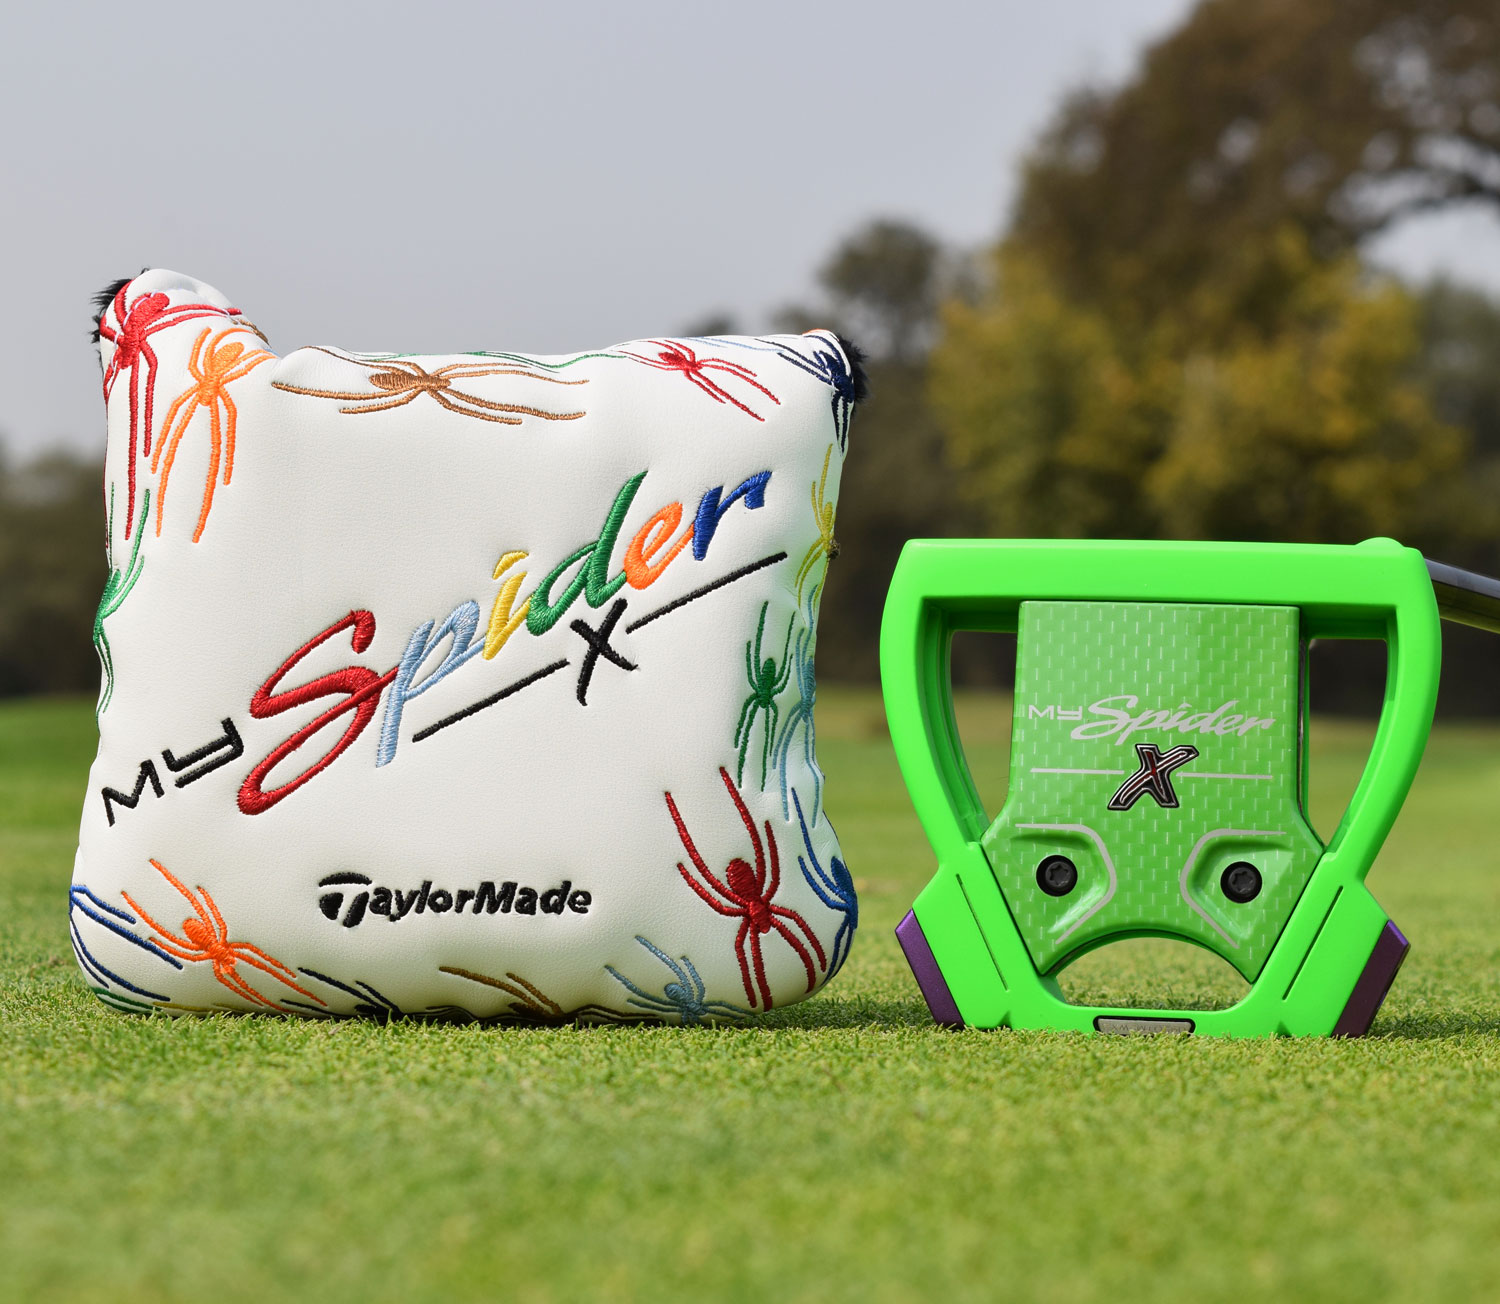 MySpider X putter and head cover